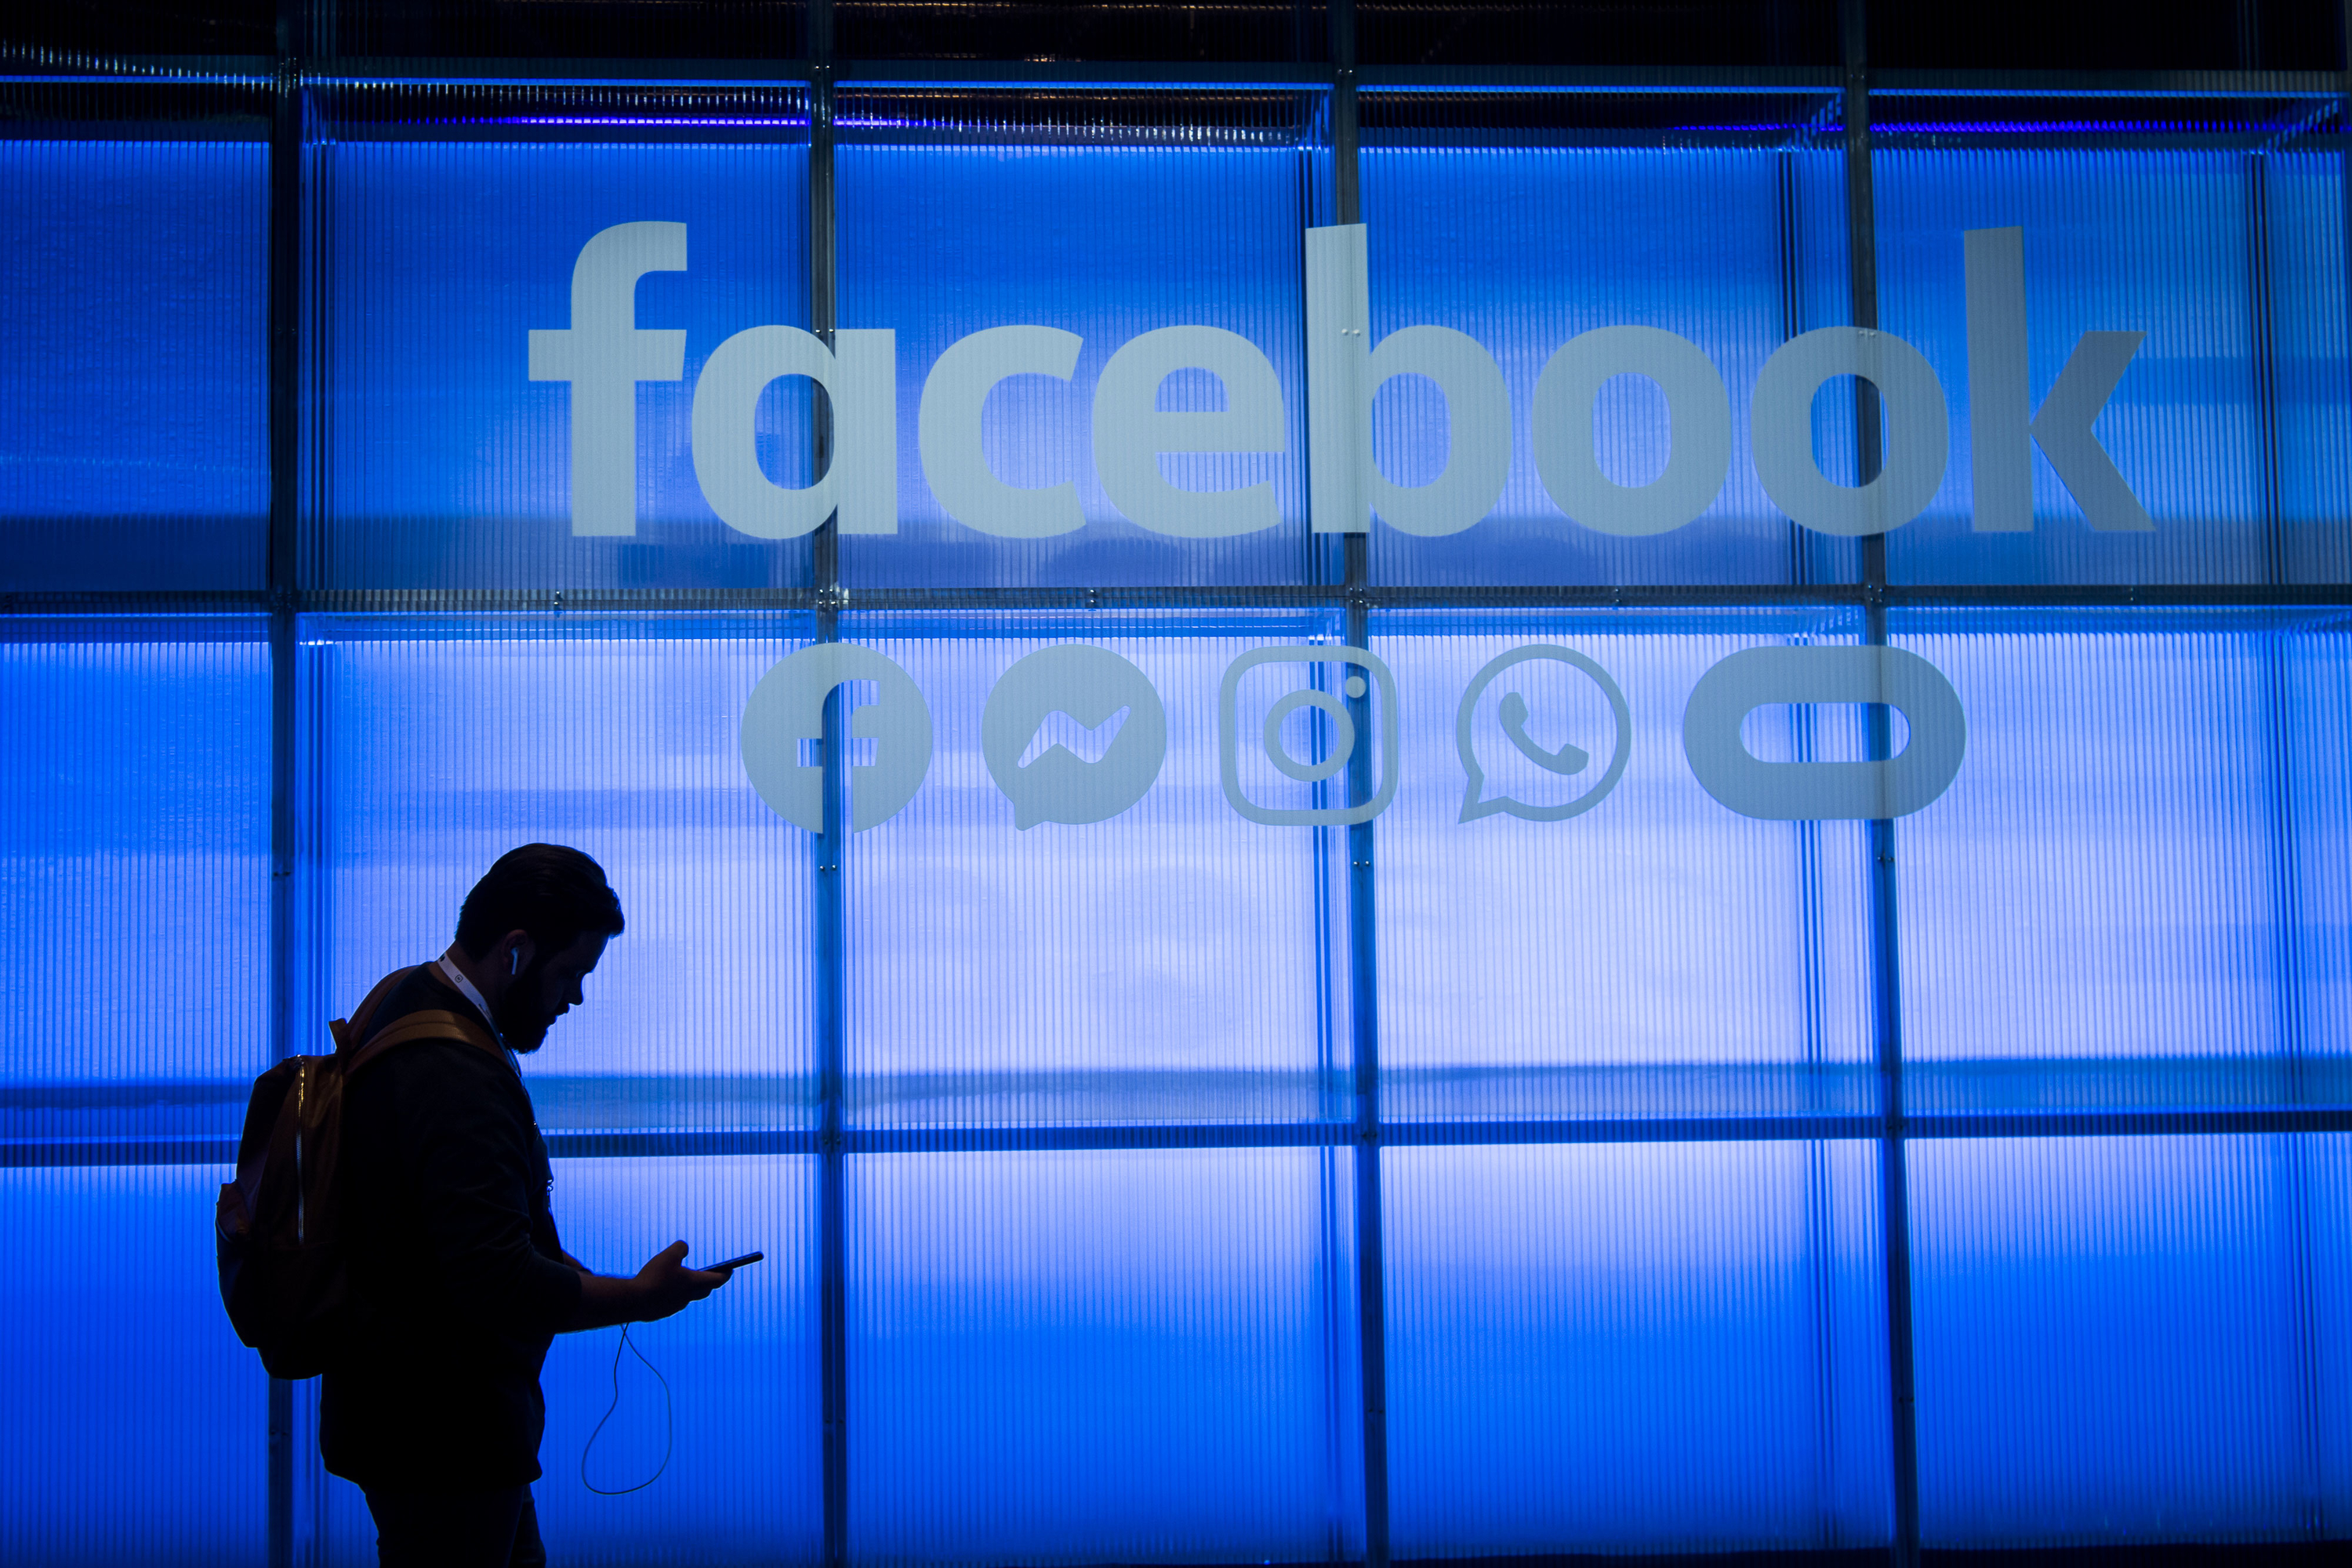 Facebook's $5 billion privacy settlement approved by U.S. Federal Trade Commission after Cambridge Analytica scandal